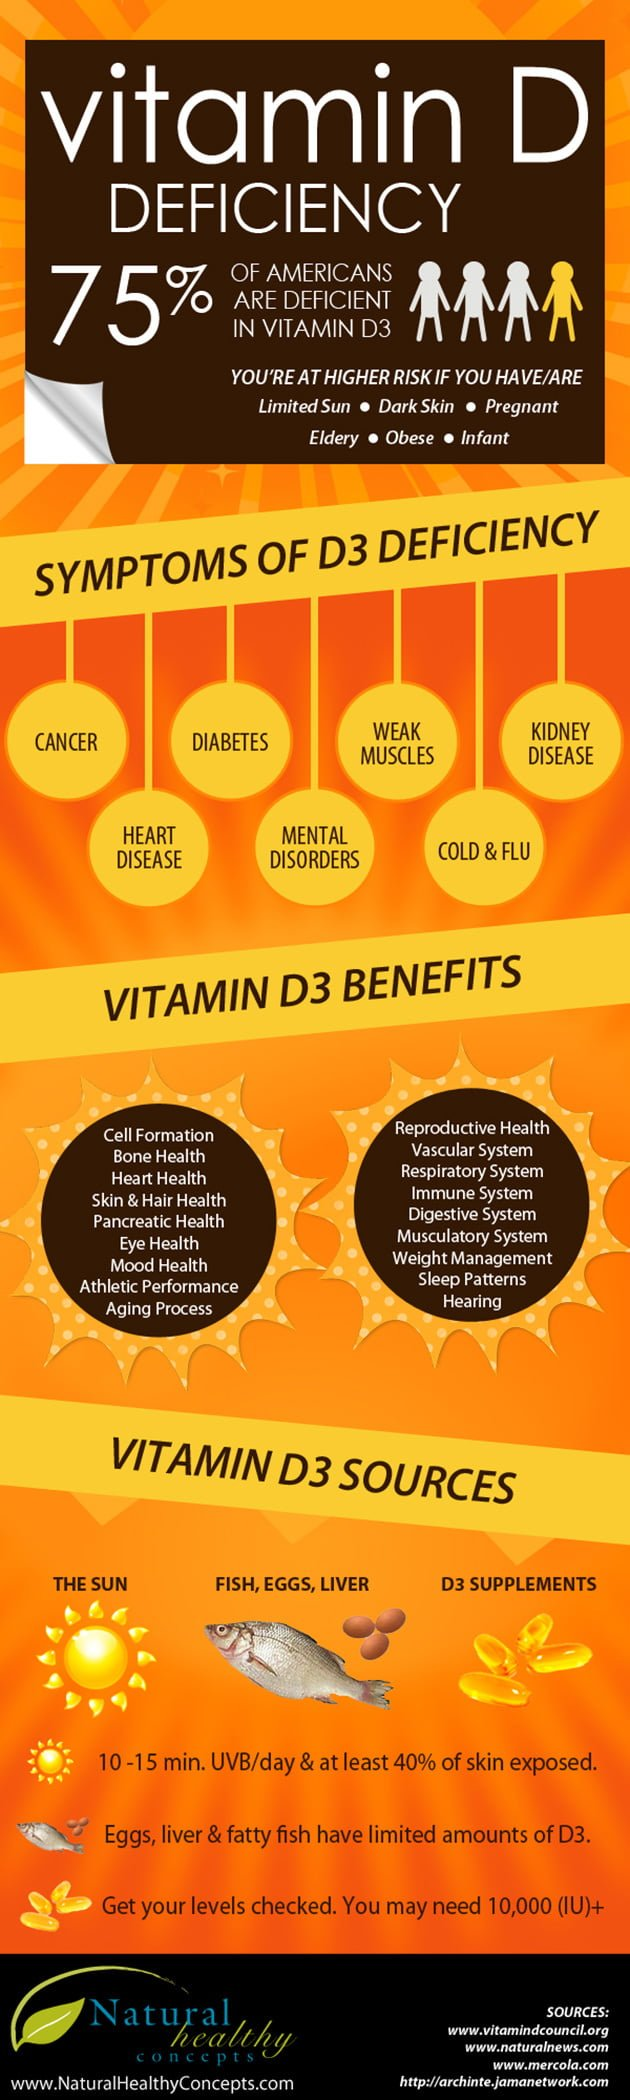 Vitamin D Deficiency Infographic